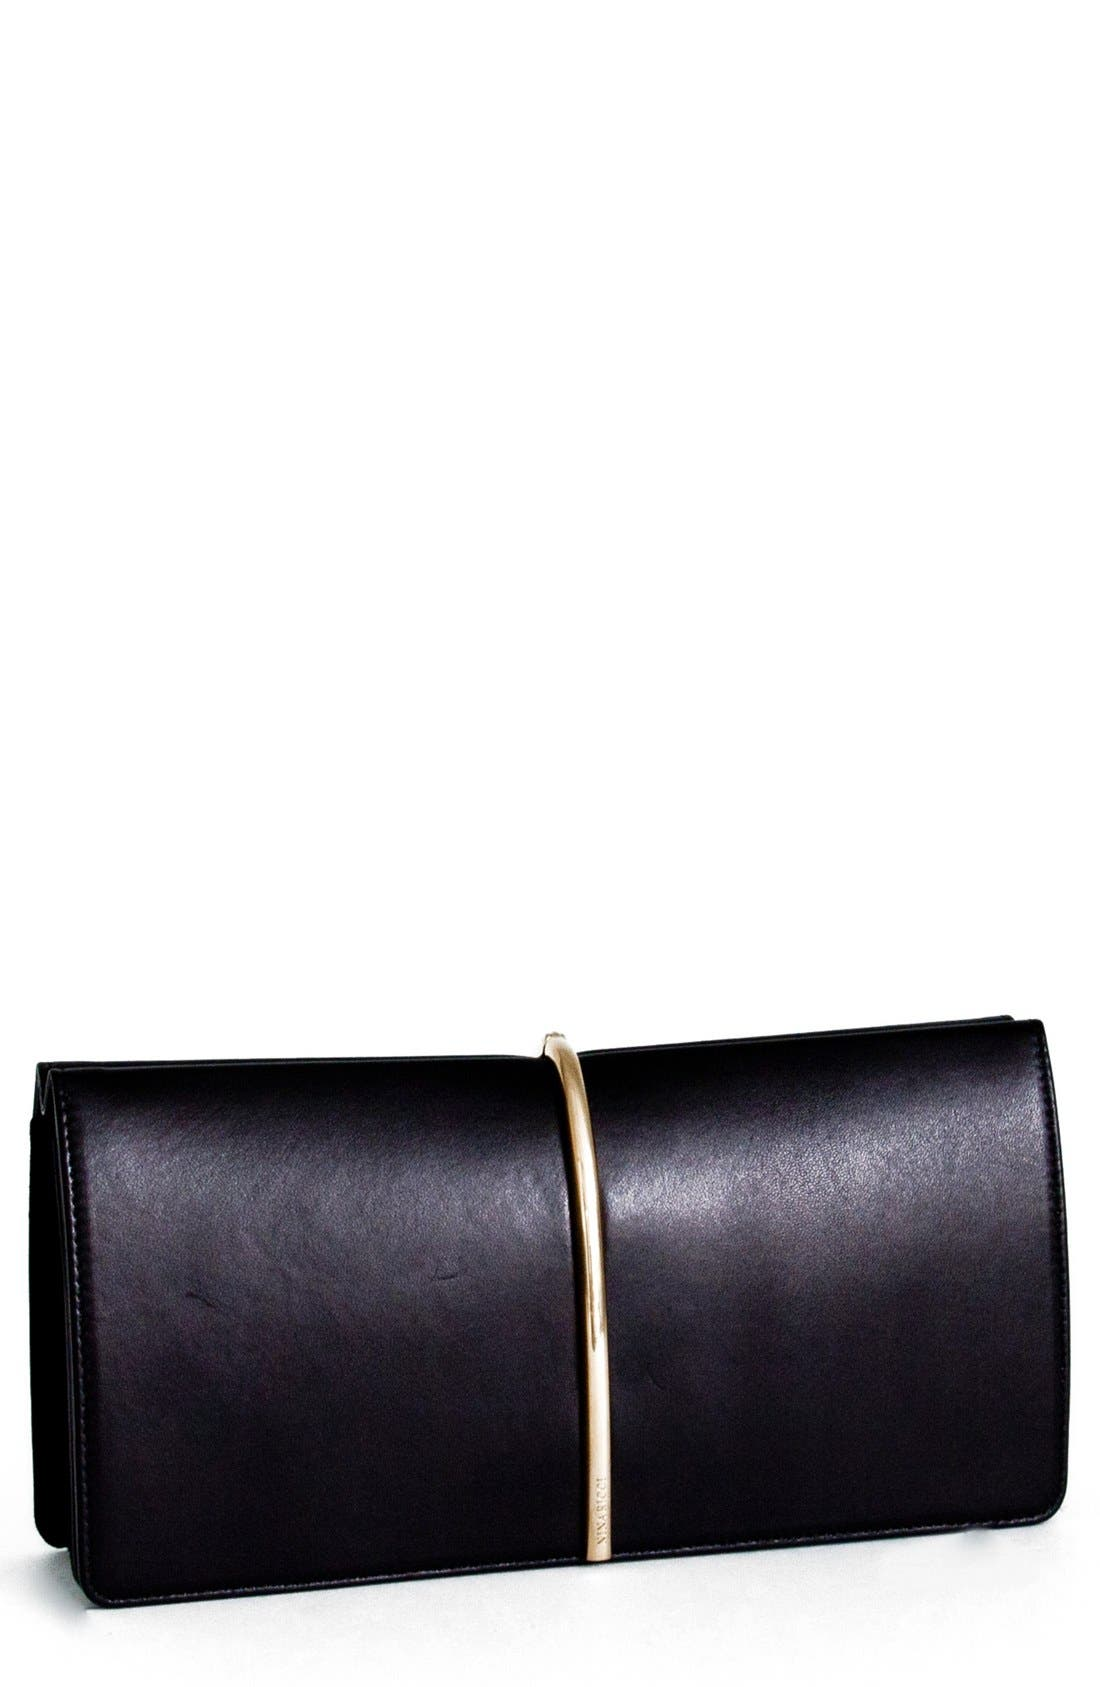 Main Image - Nina Ricci 'Arc' Leather Clutch